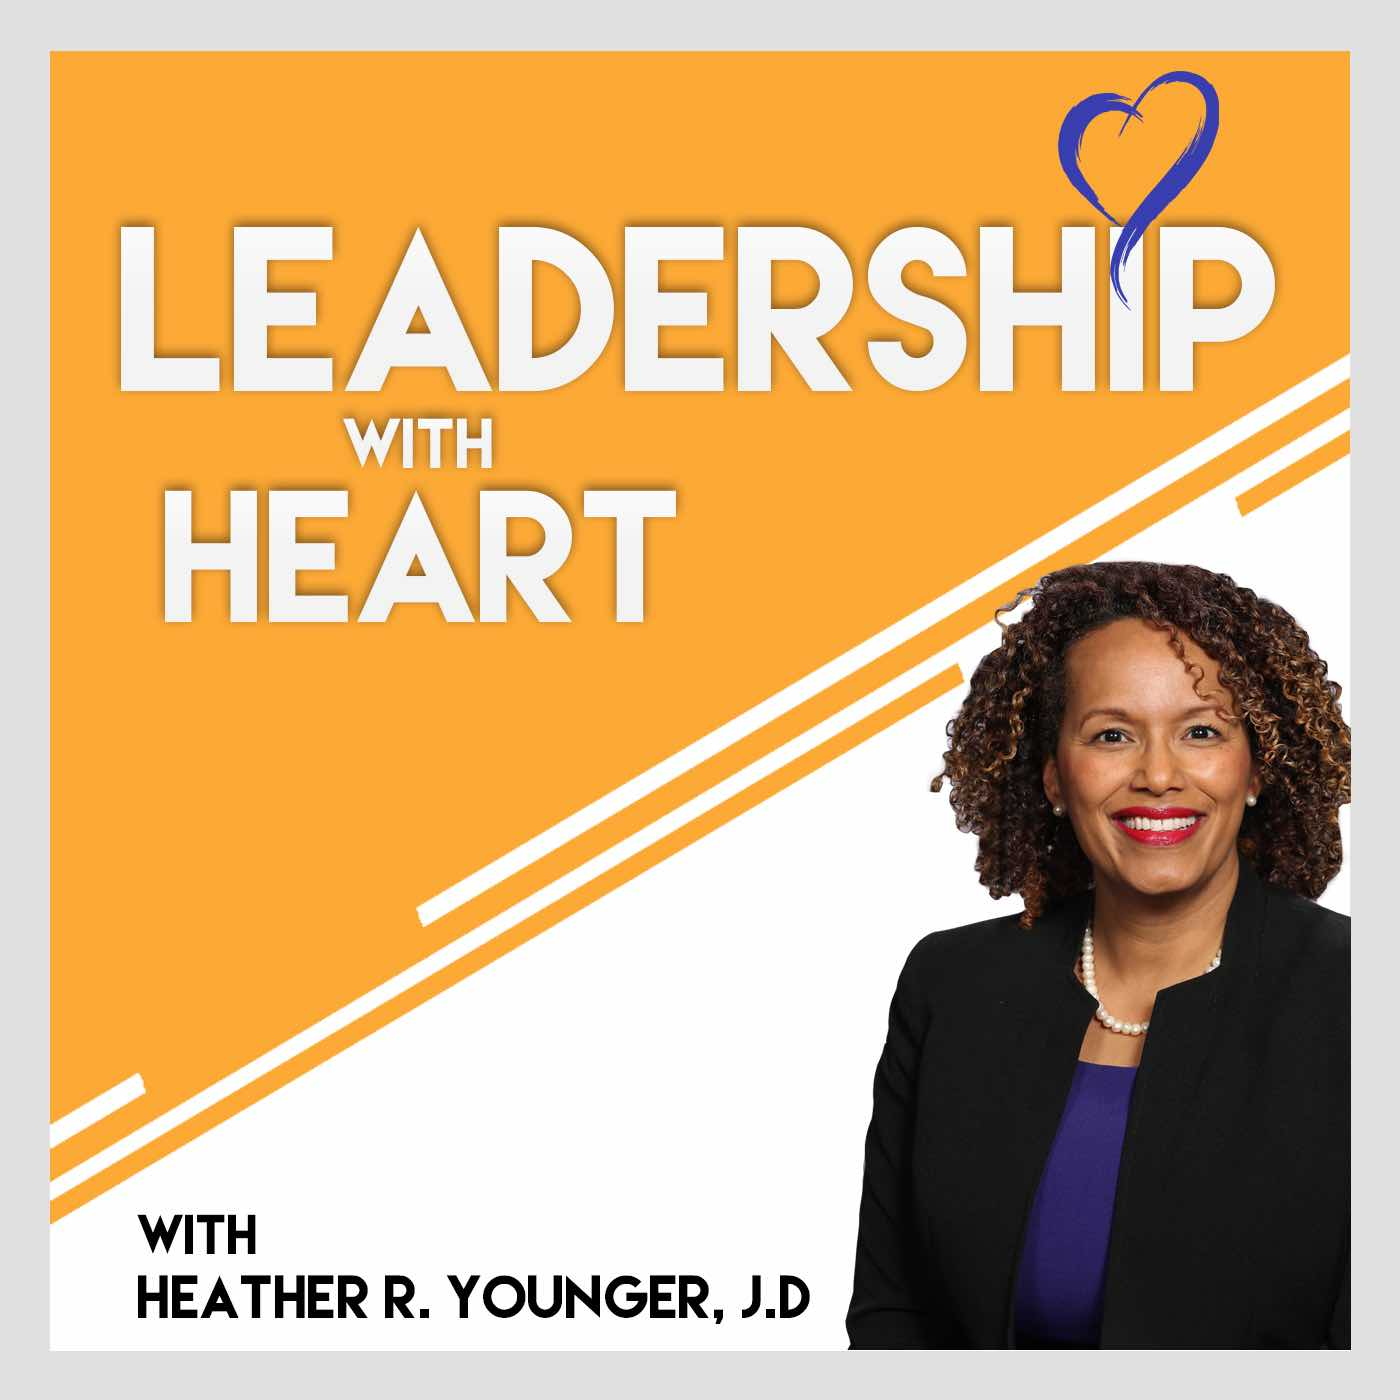 129: Leaders with Heart Use Employee Feedback to Improve Themselves